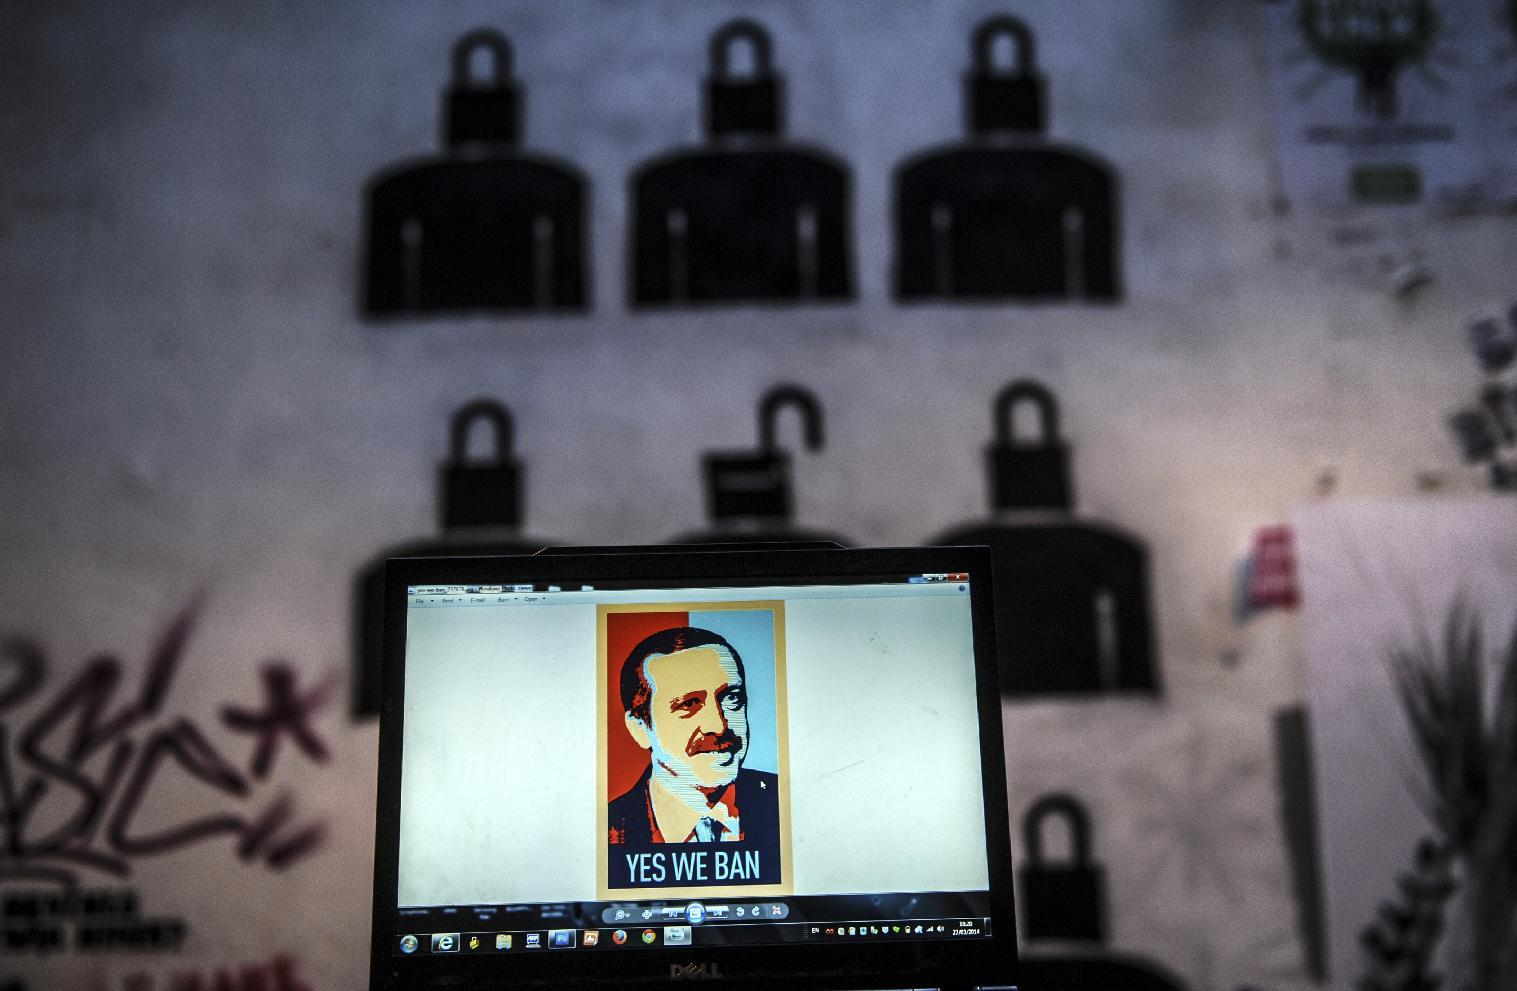 """A computer screen shows a digital portrait of the Turkish Prime Minister Recep Tayyip Erdogan and text reading """"Yes we ban"""" in Istanbul, on March 27, 2014, the day Turkey banned video sharing website YouTube"""